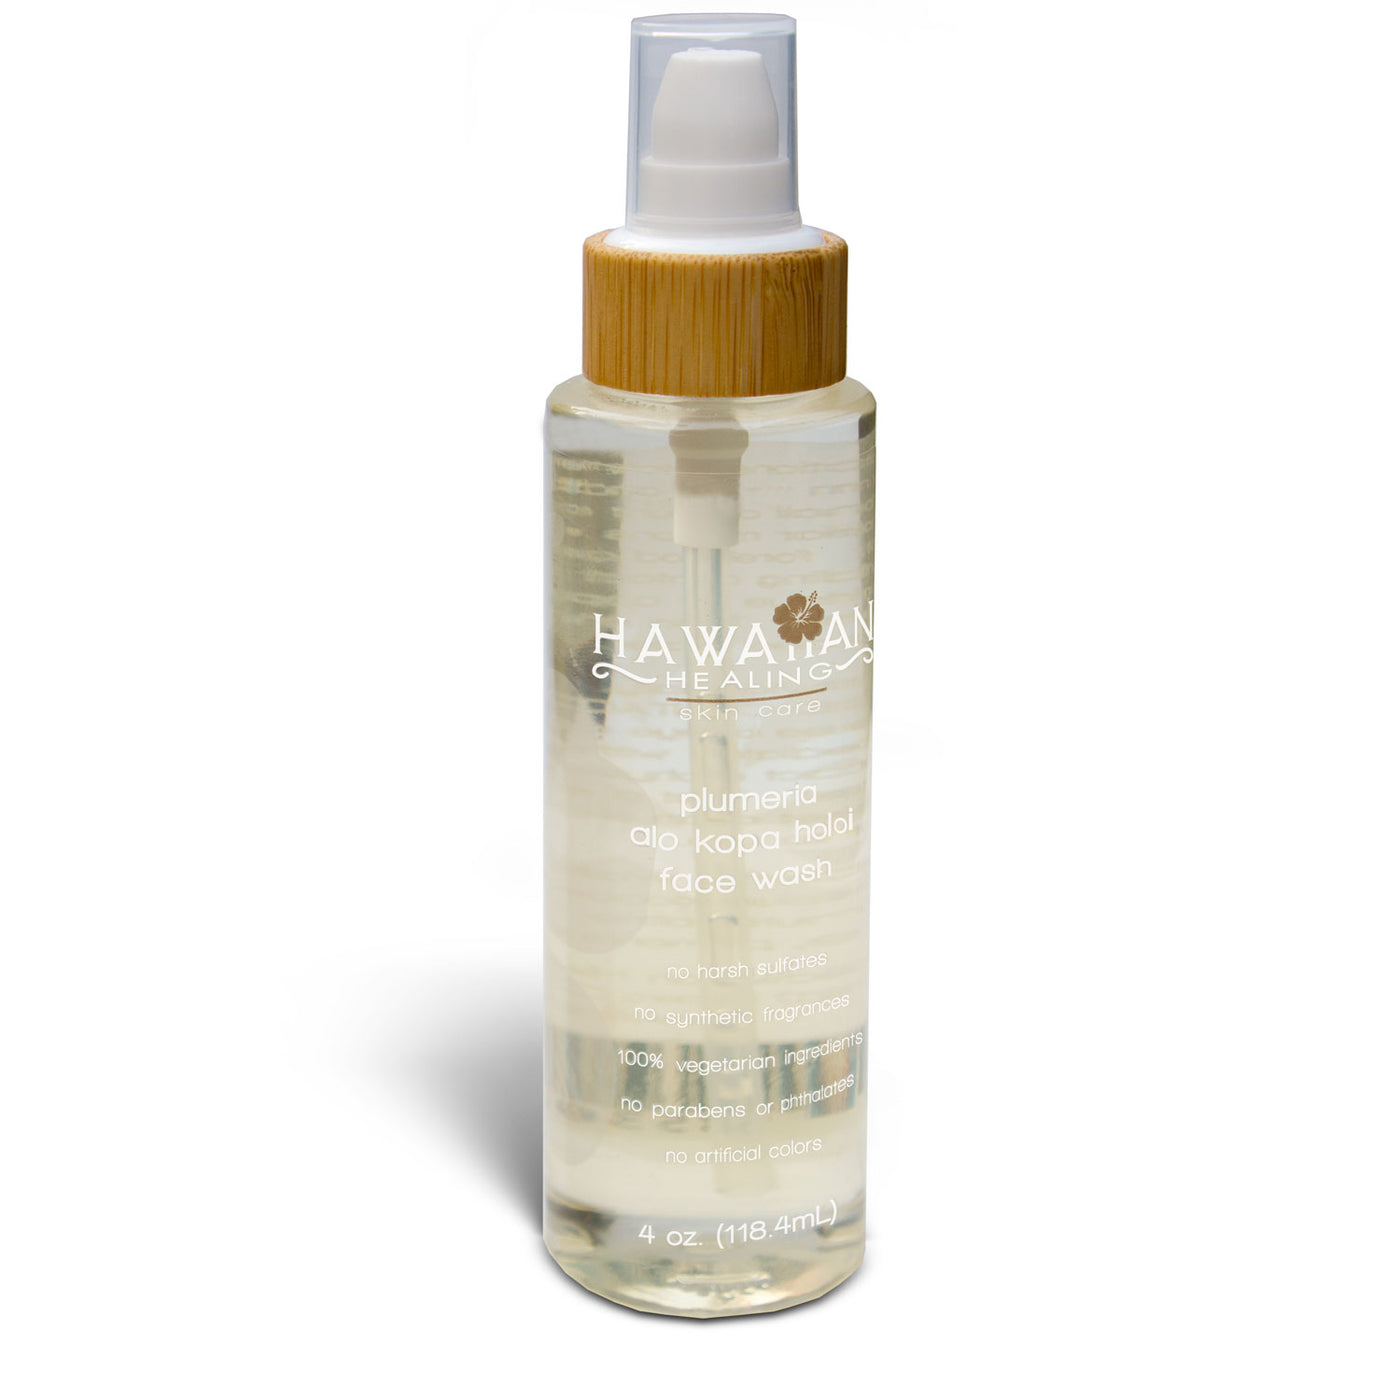 Plumeria Alo Kopa Holoi Face Wash - 4oz bottle - Hawaiian Healing